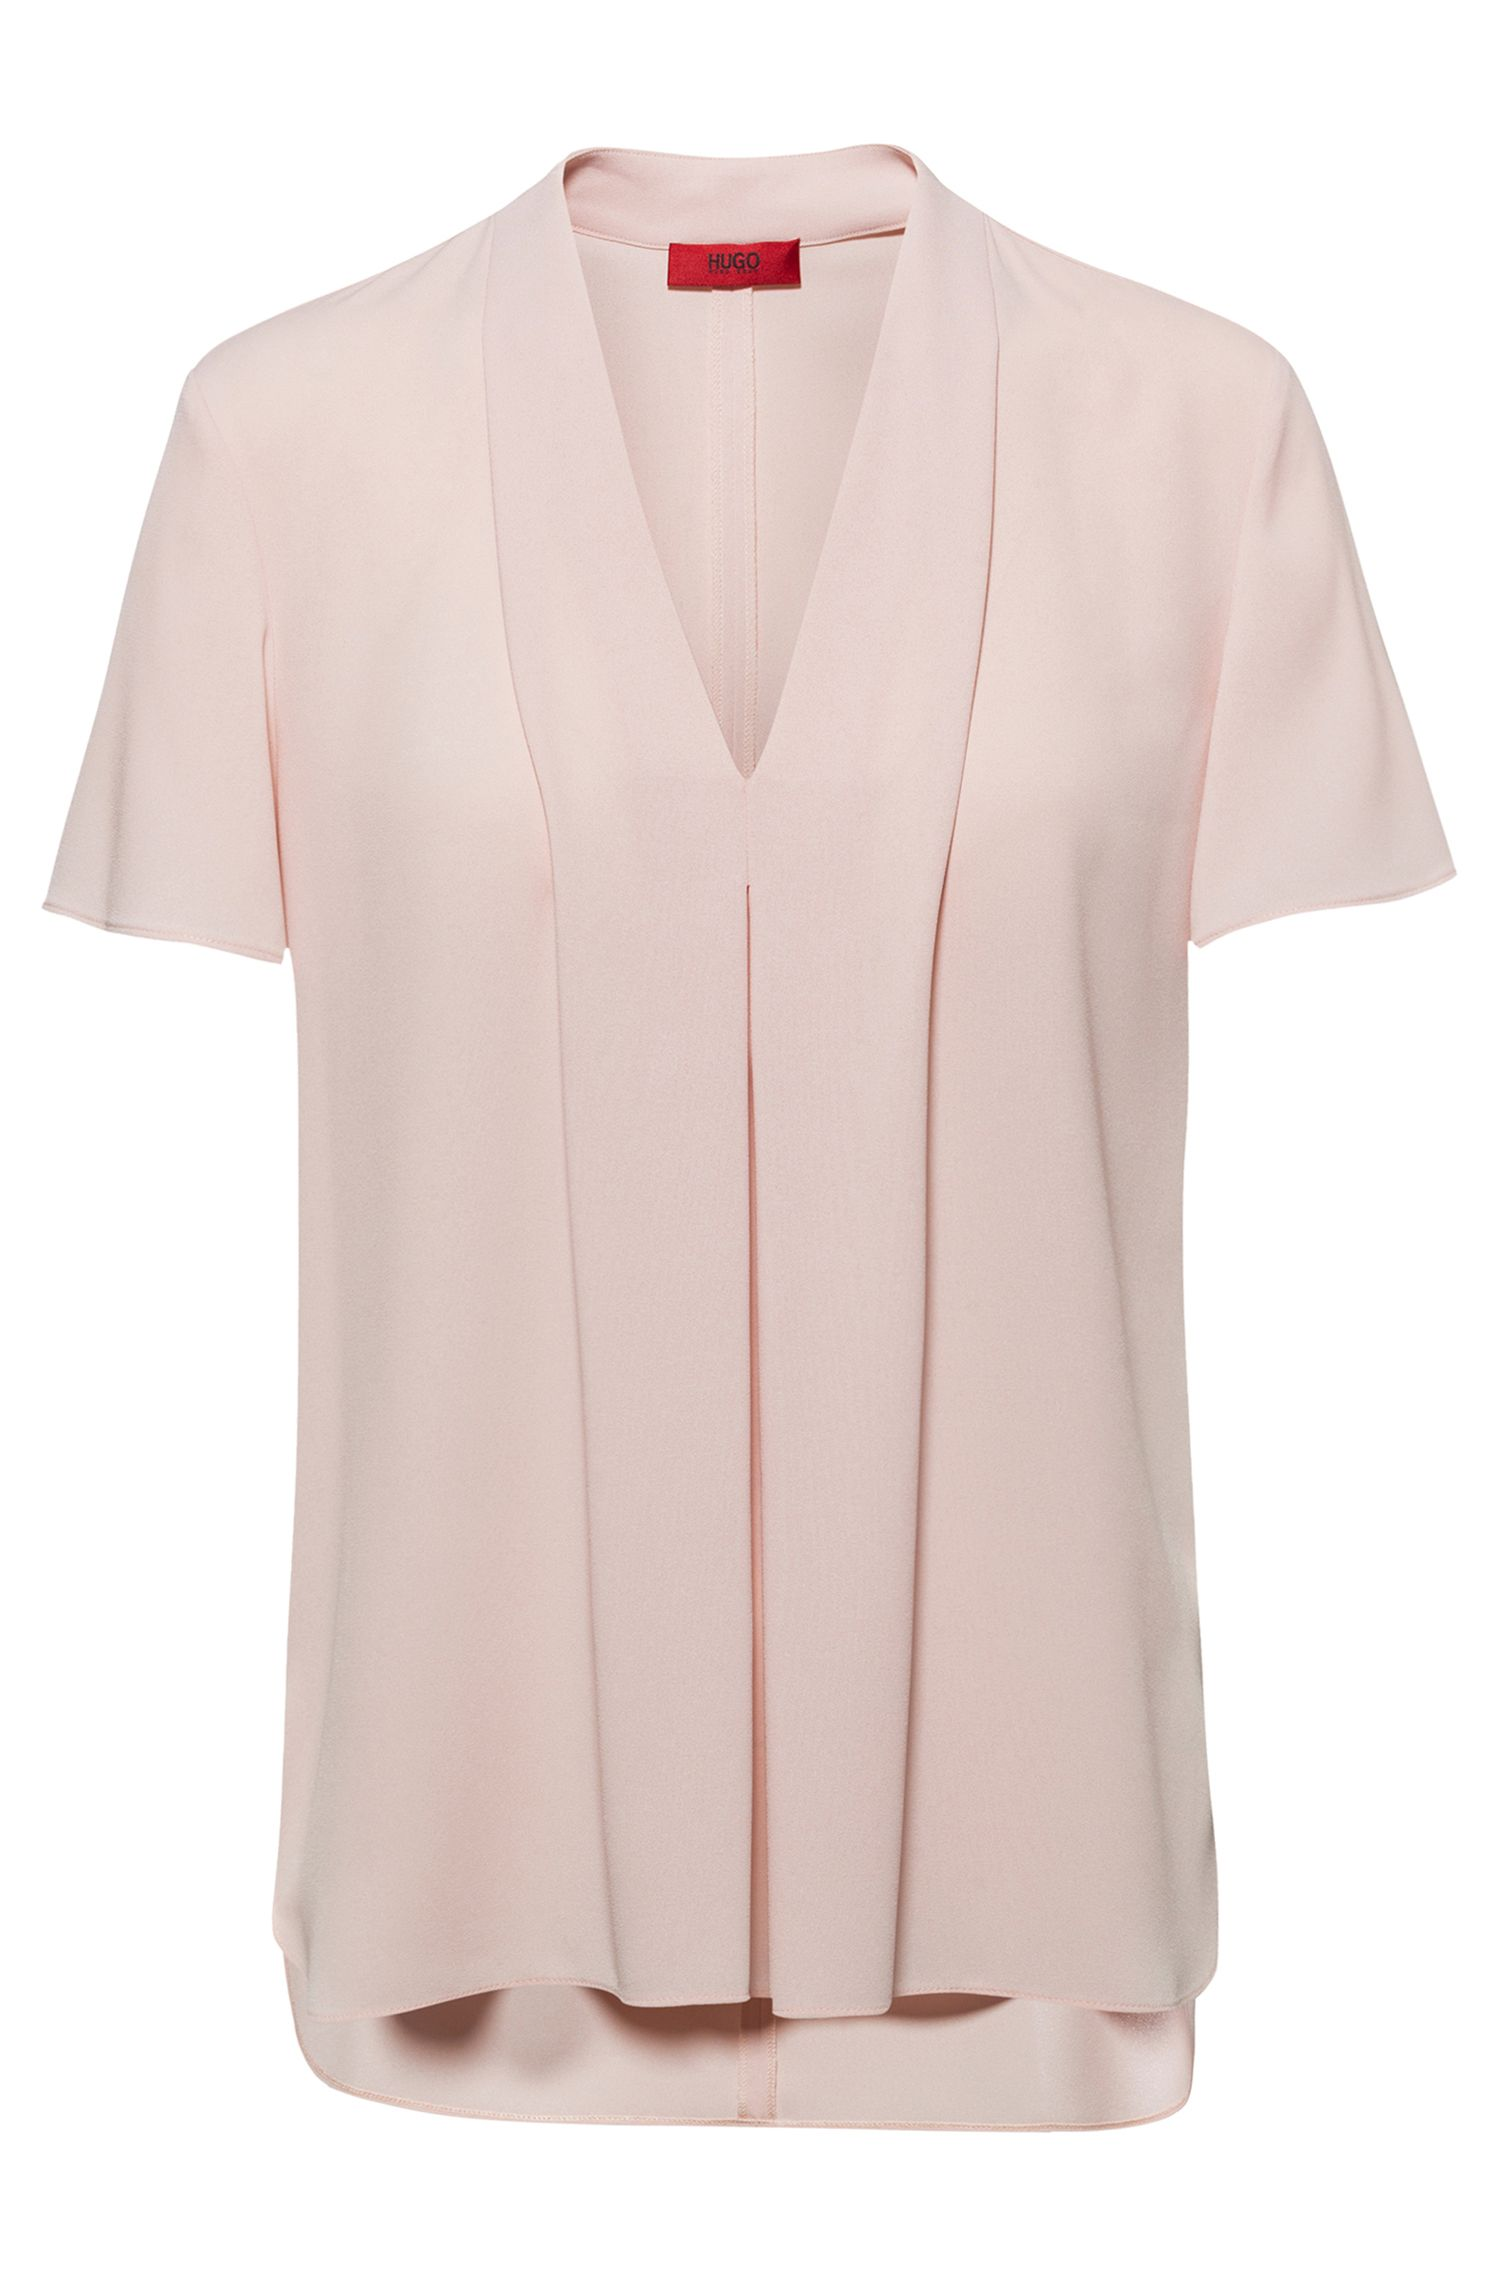 V-neck top in crinkle crepe with pleated front, light pink